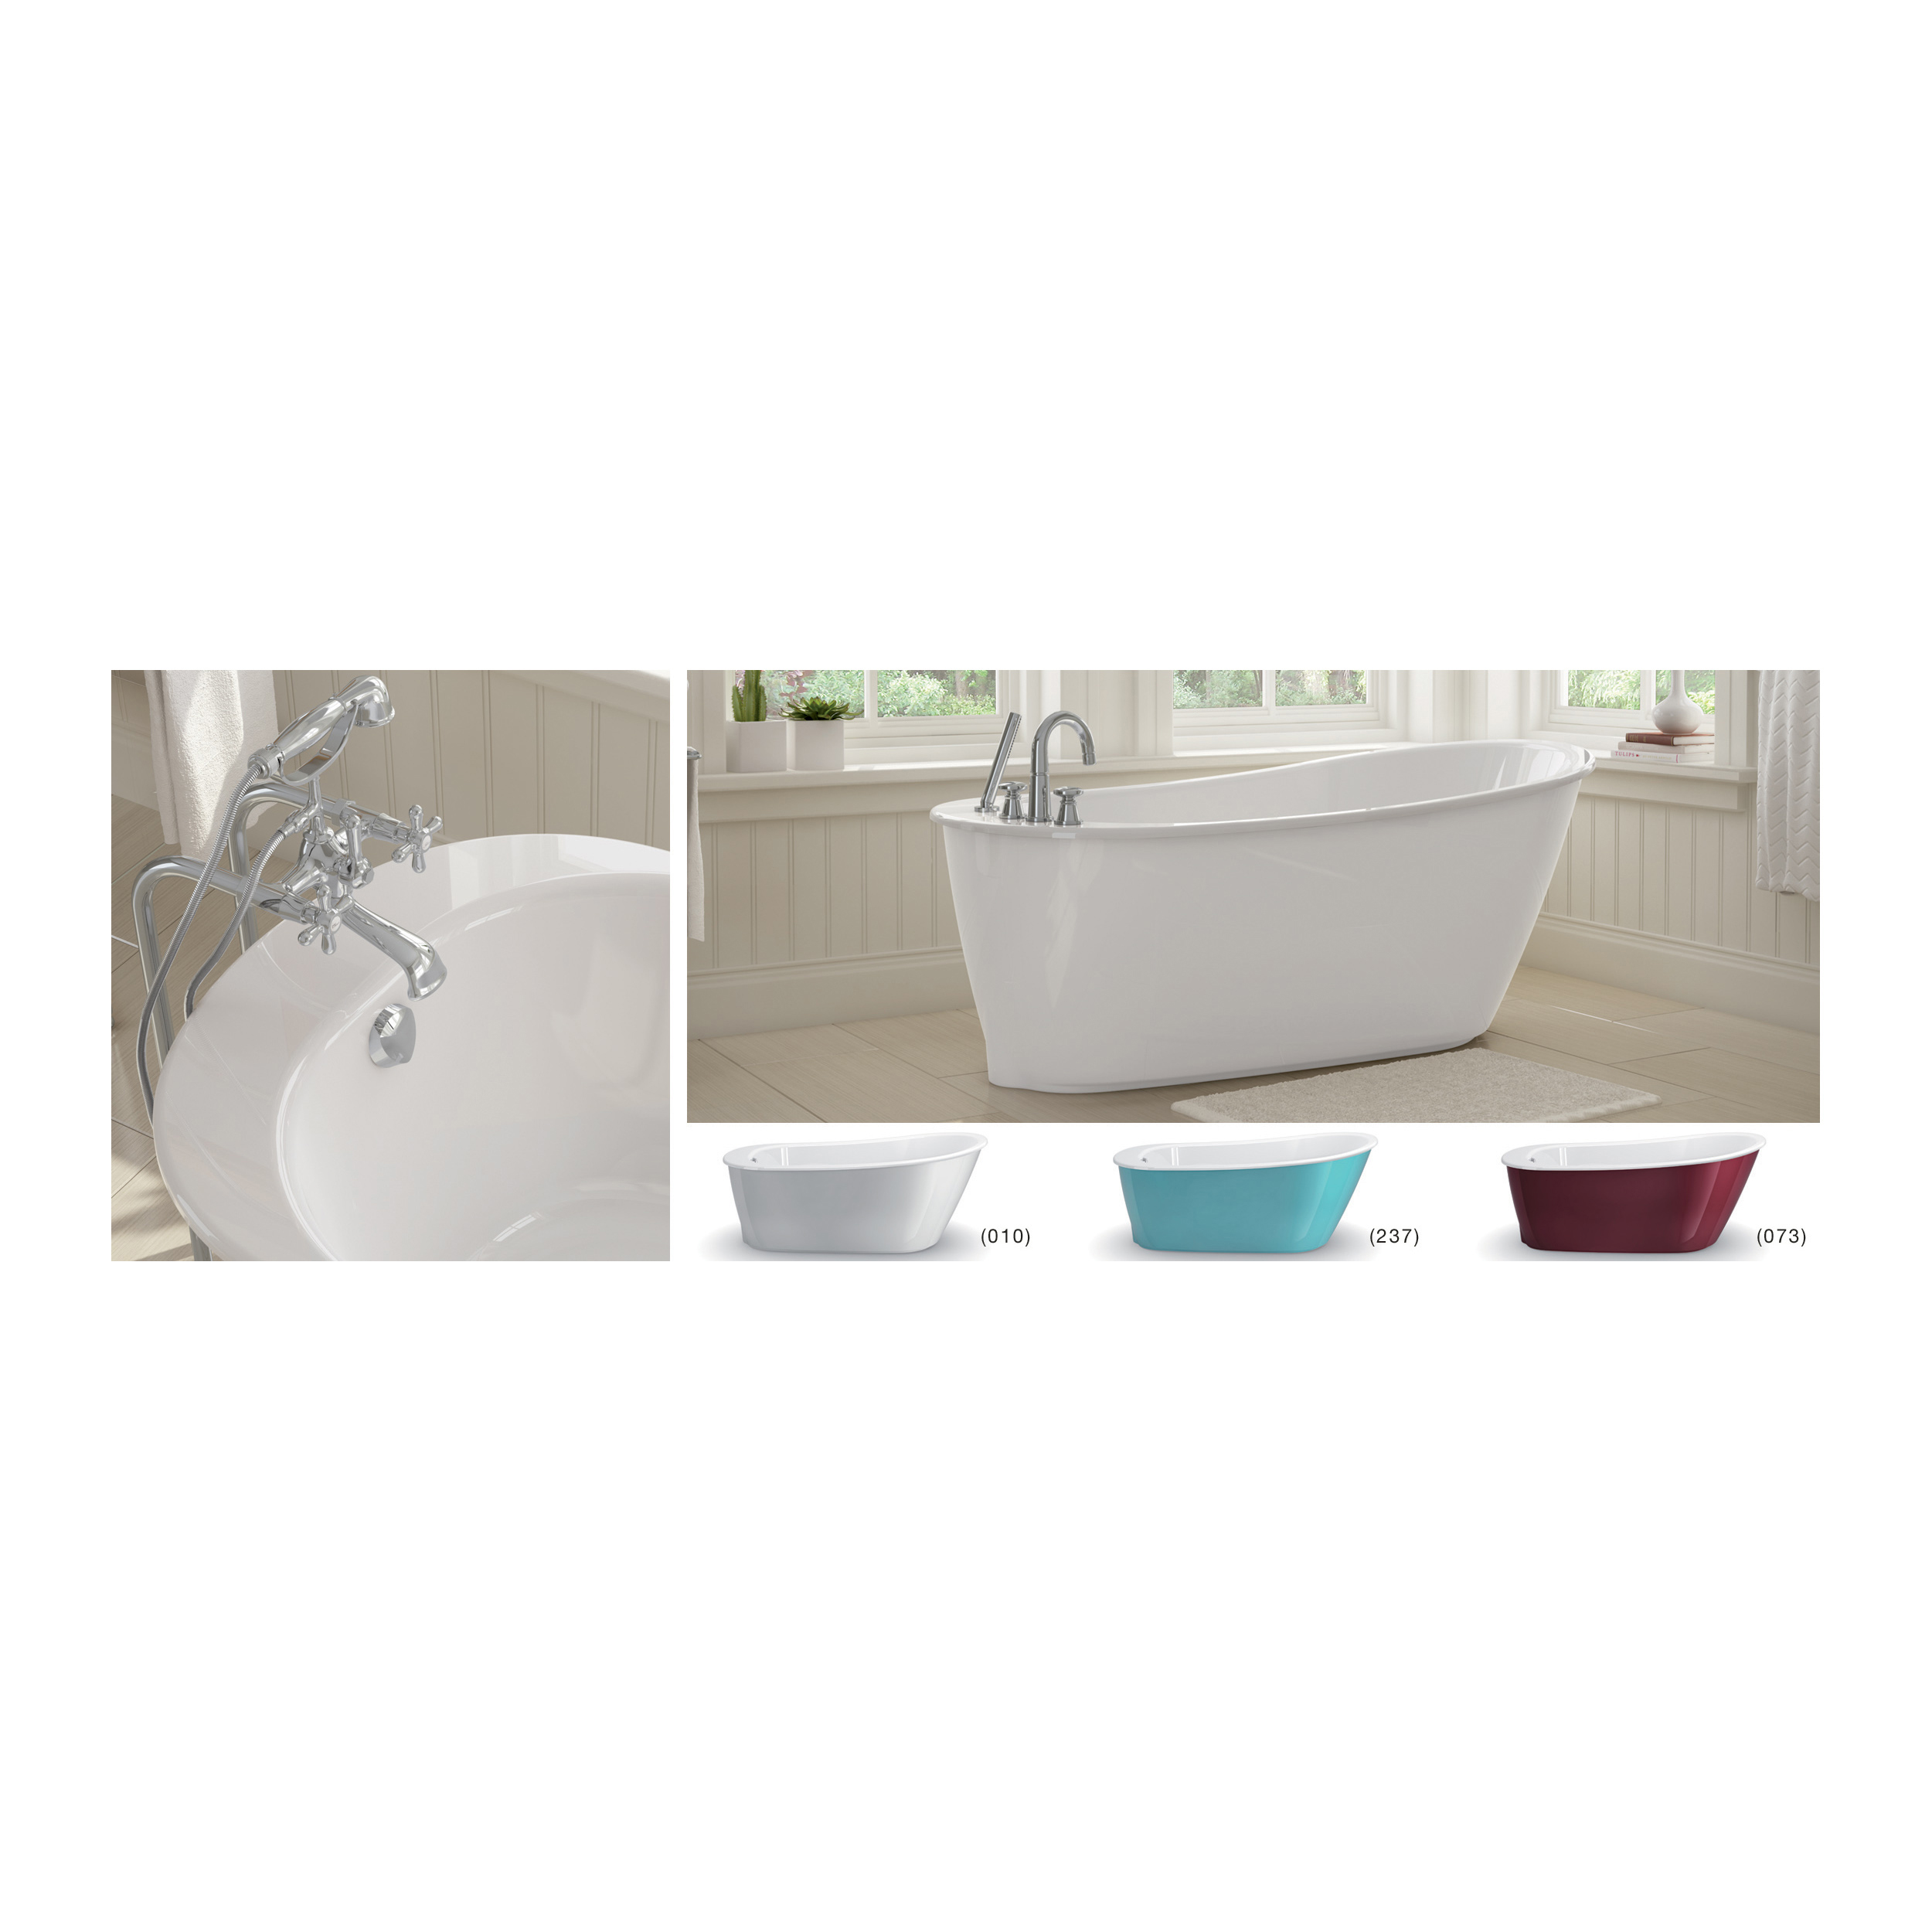 MAAX® 105797-000-002 Sax 2-Piece Bathtub, Oval, 60-1/8 in L x 32 in W, End Drain, White